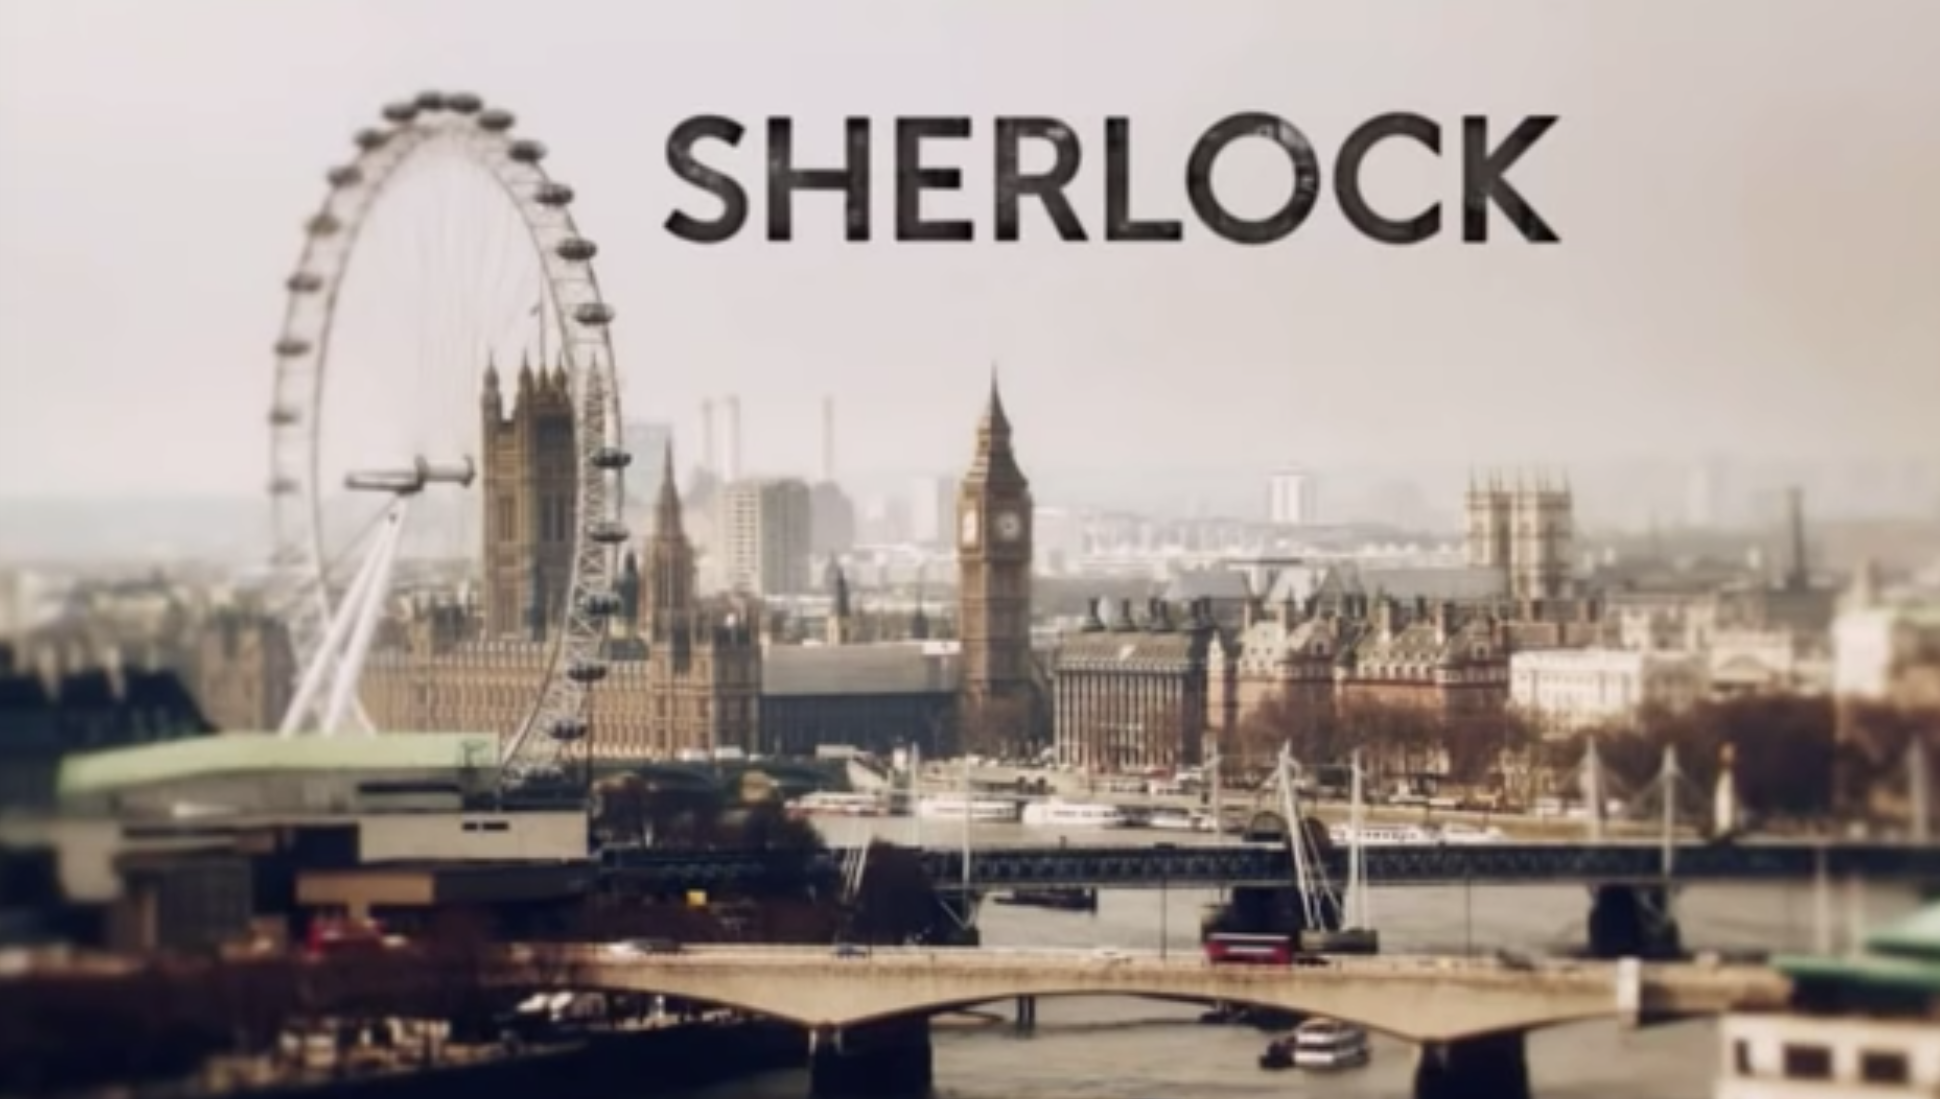 """Sherlock"" title card — which is the title over a London landscape."